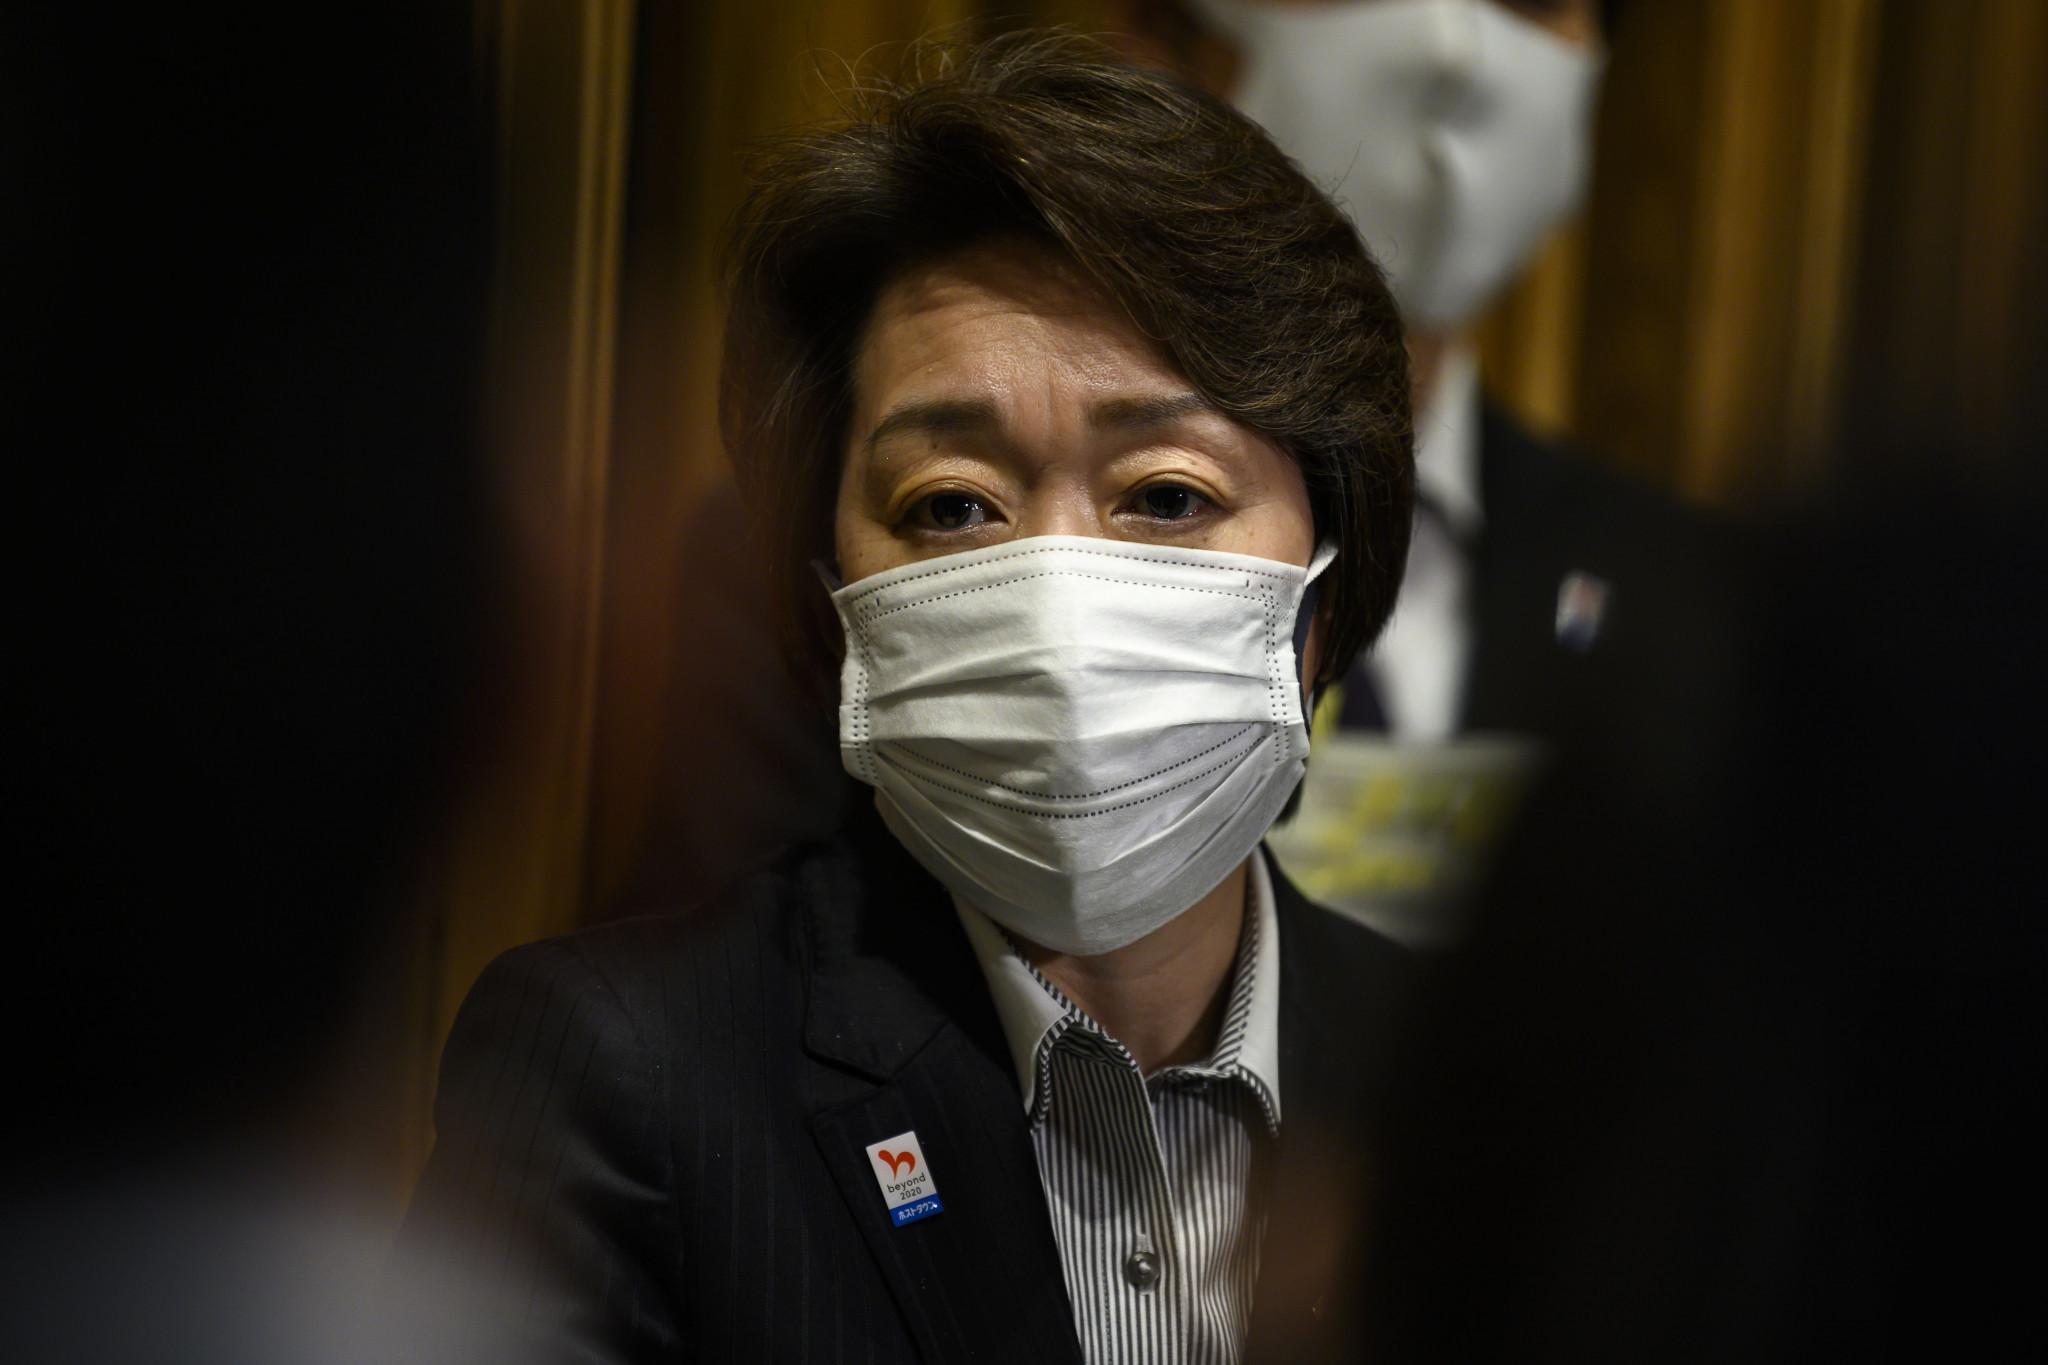 Olympics Minister Hashimoto in frame to replace Mori as Tokyo 2020 President